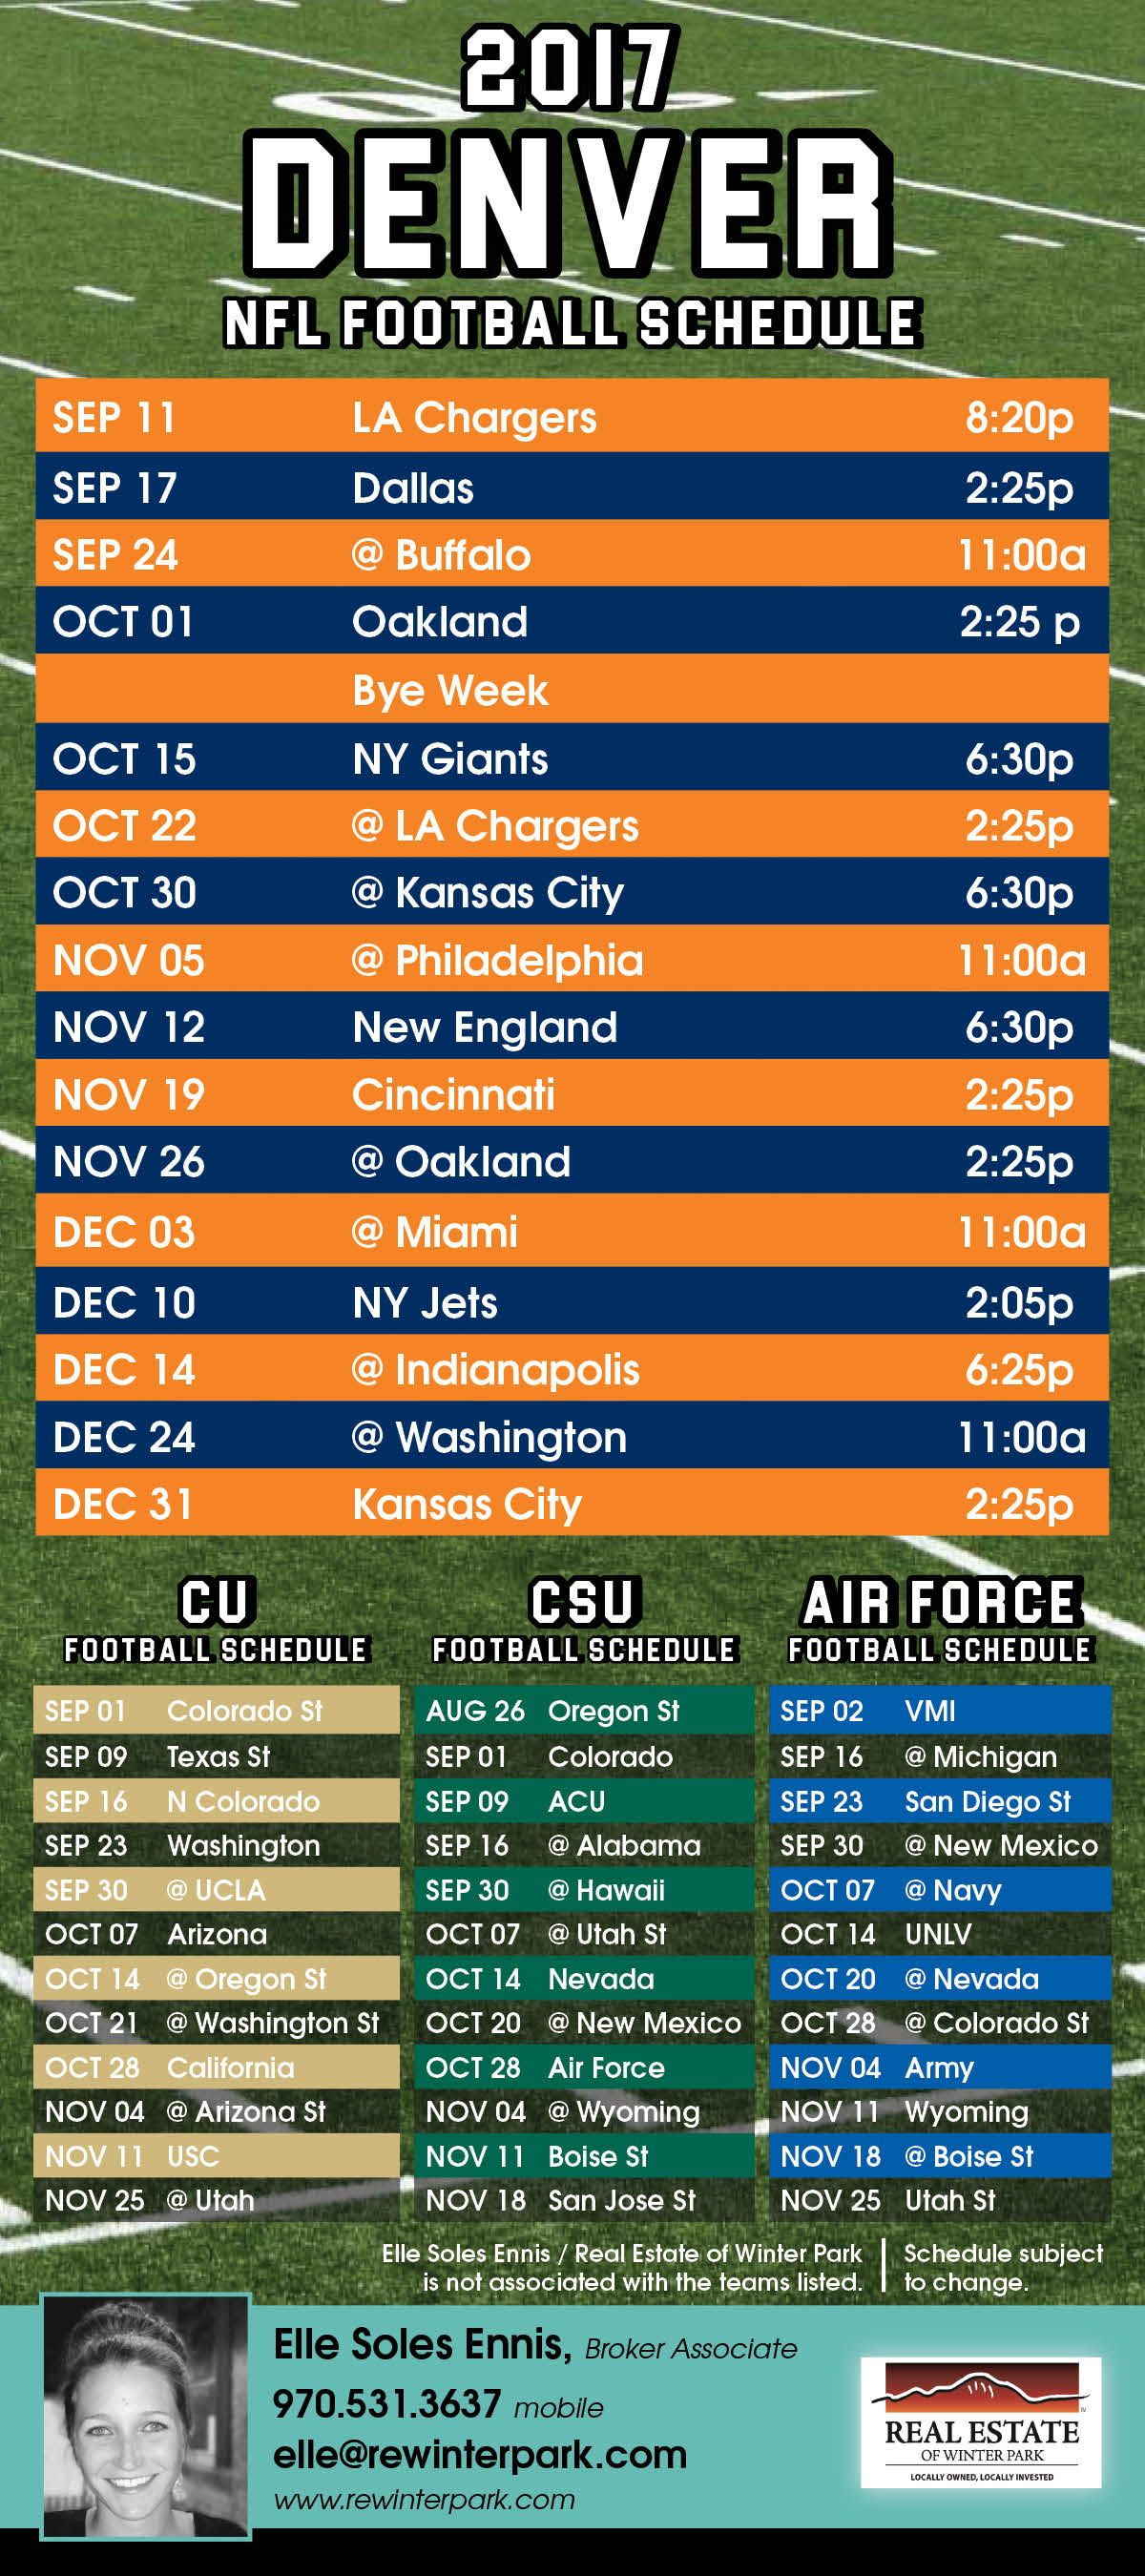 Broncos Schedule Air Force Football Schedule Colorado State